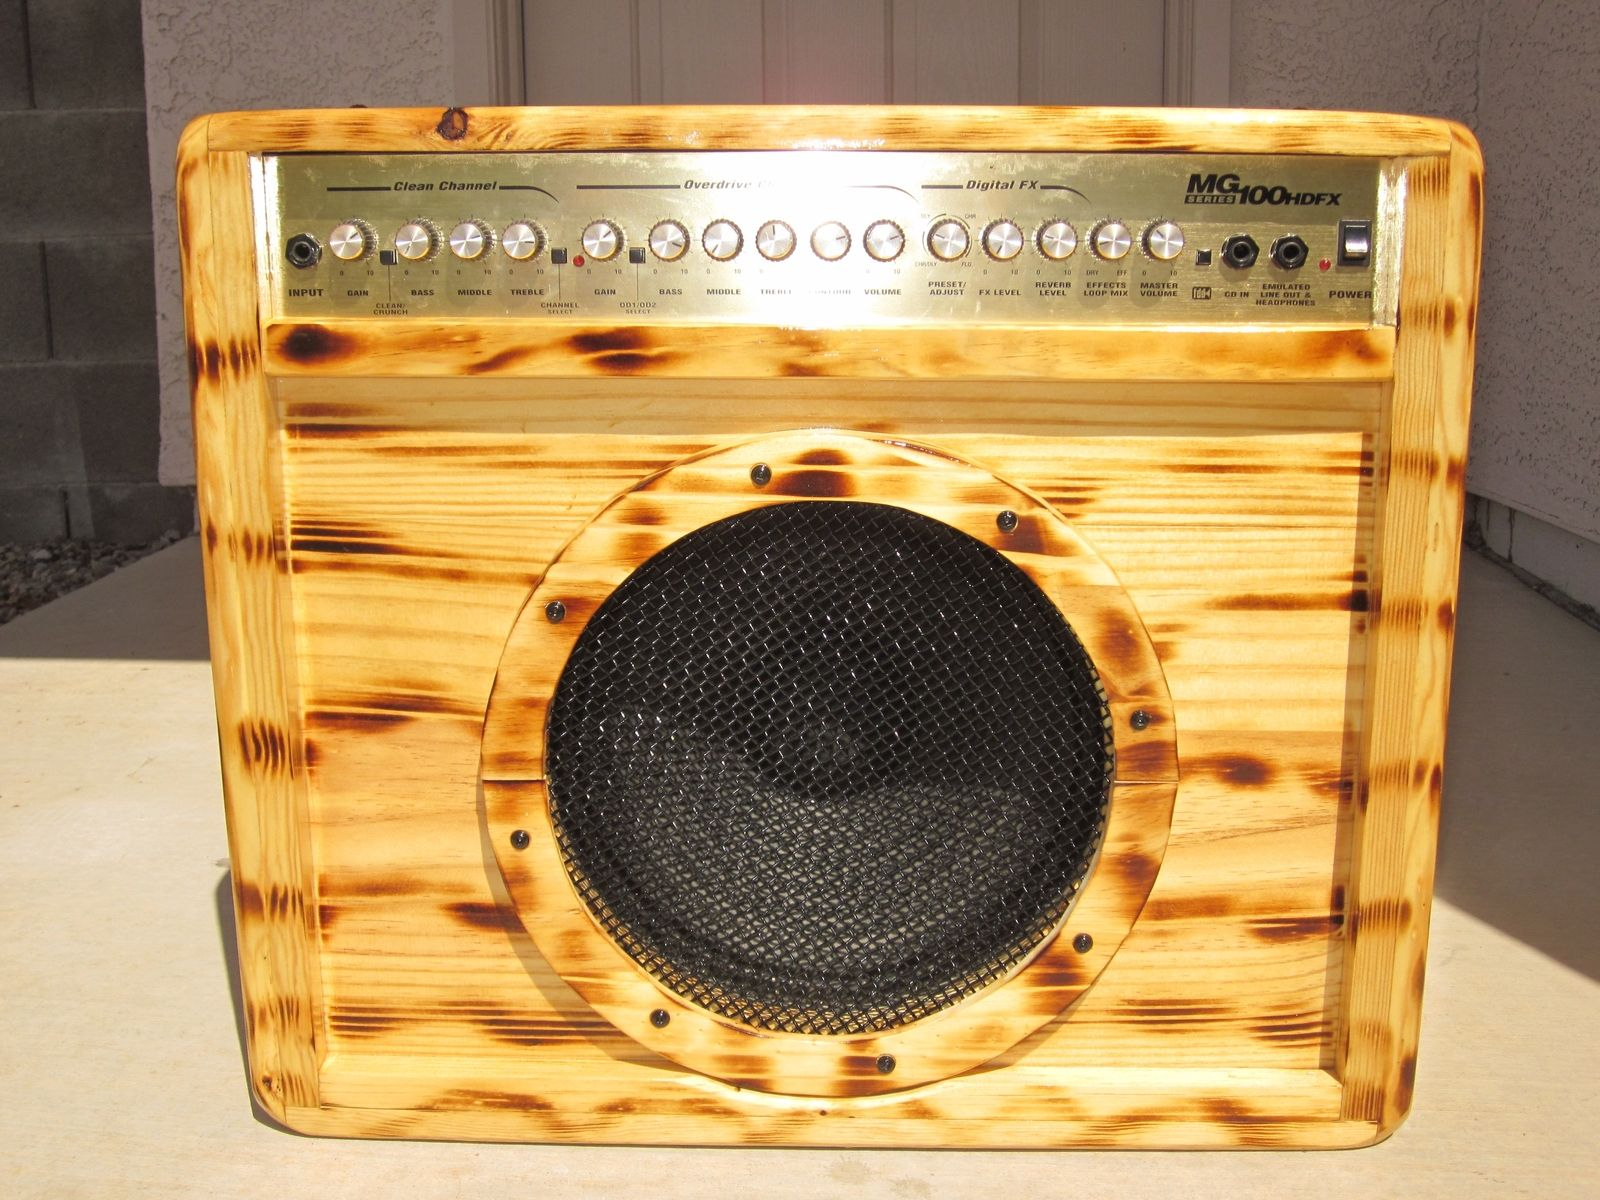 Hand Crafted Custom Speaker Box And Amp Cab by Sonoran Sandman ...